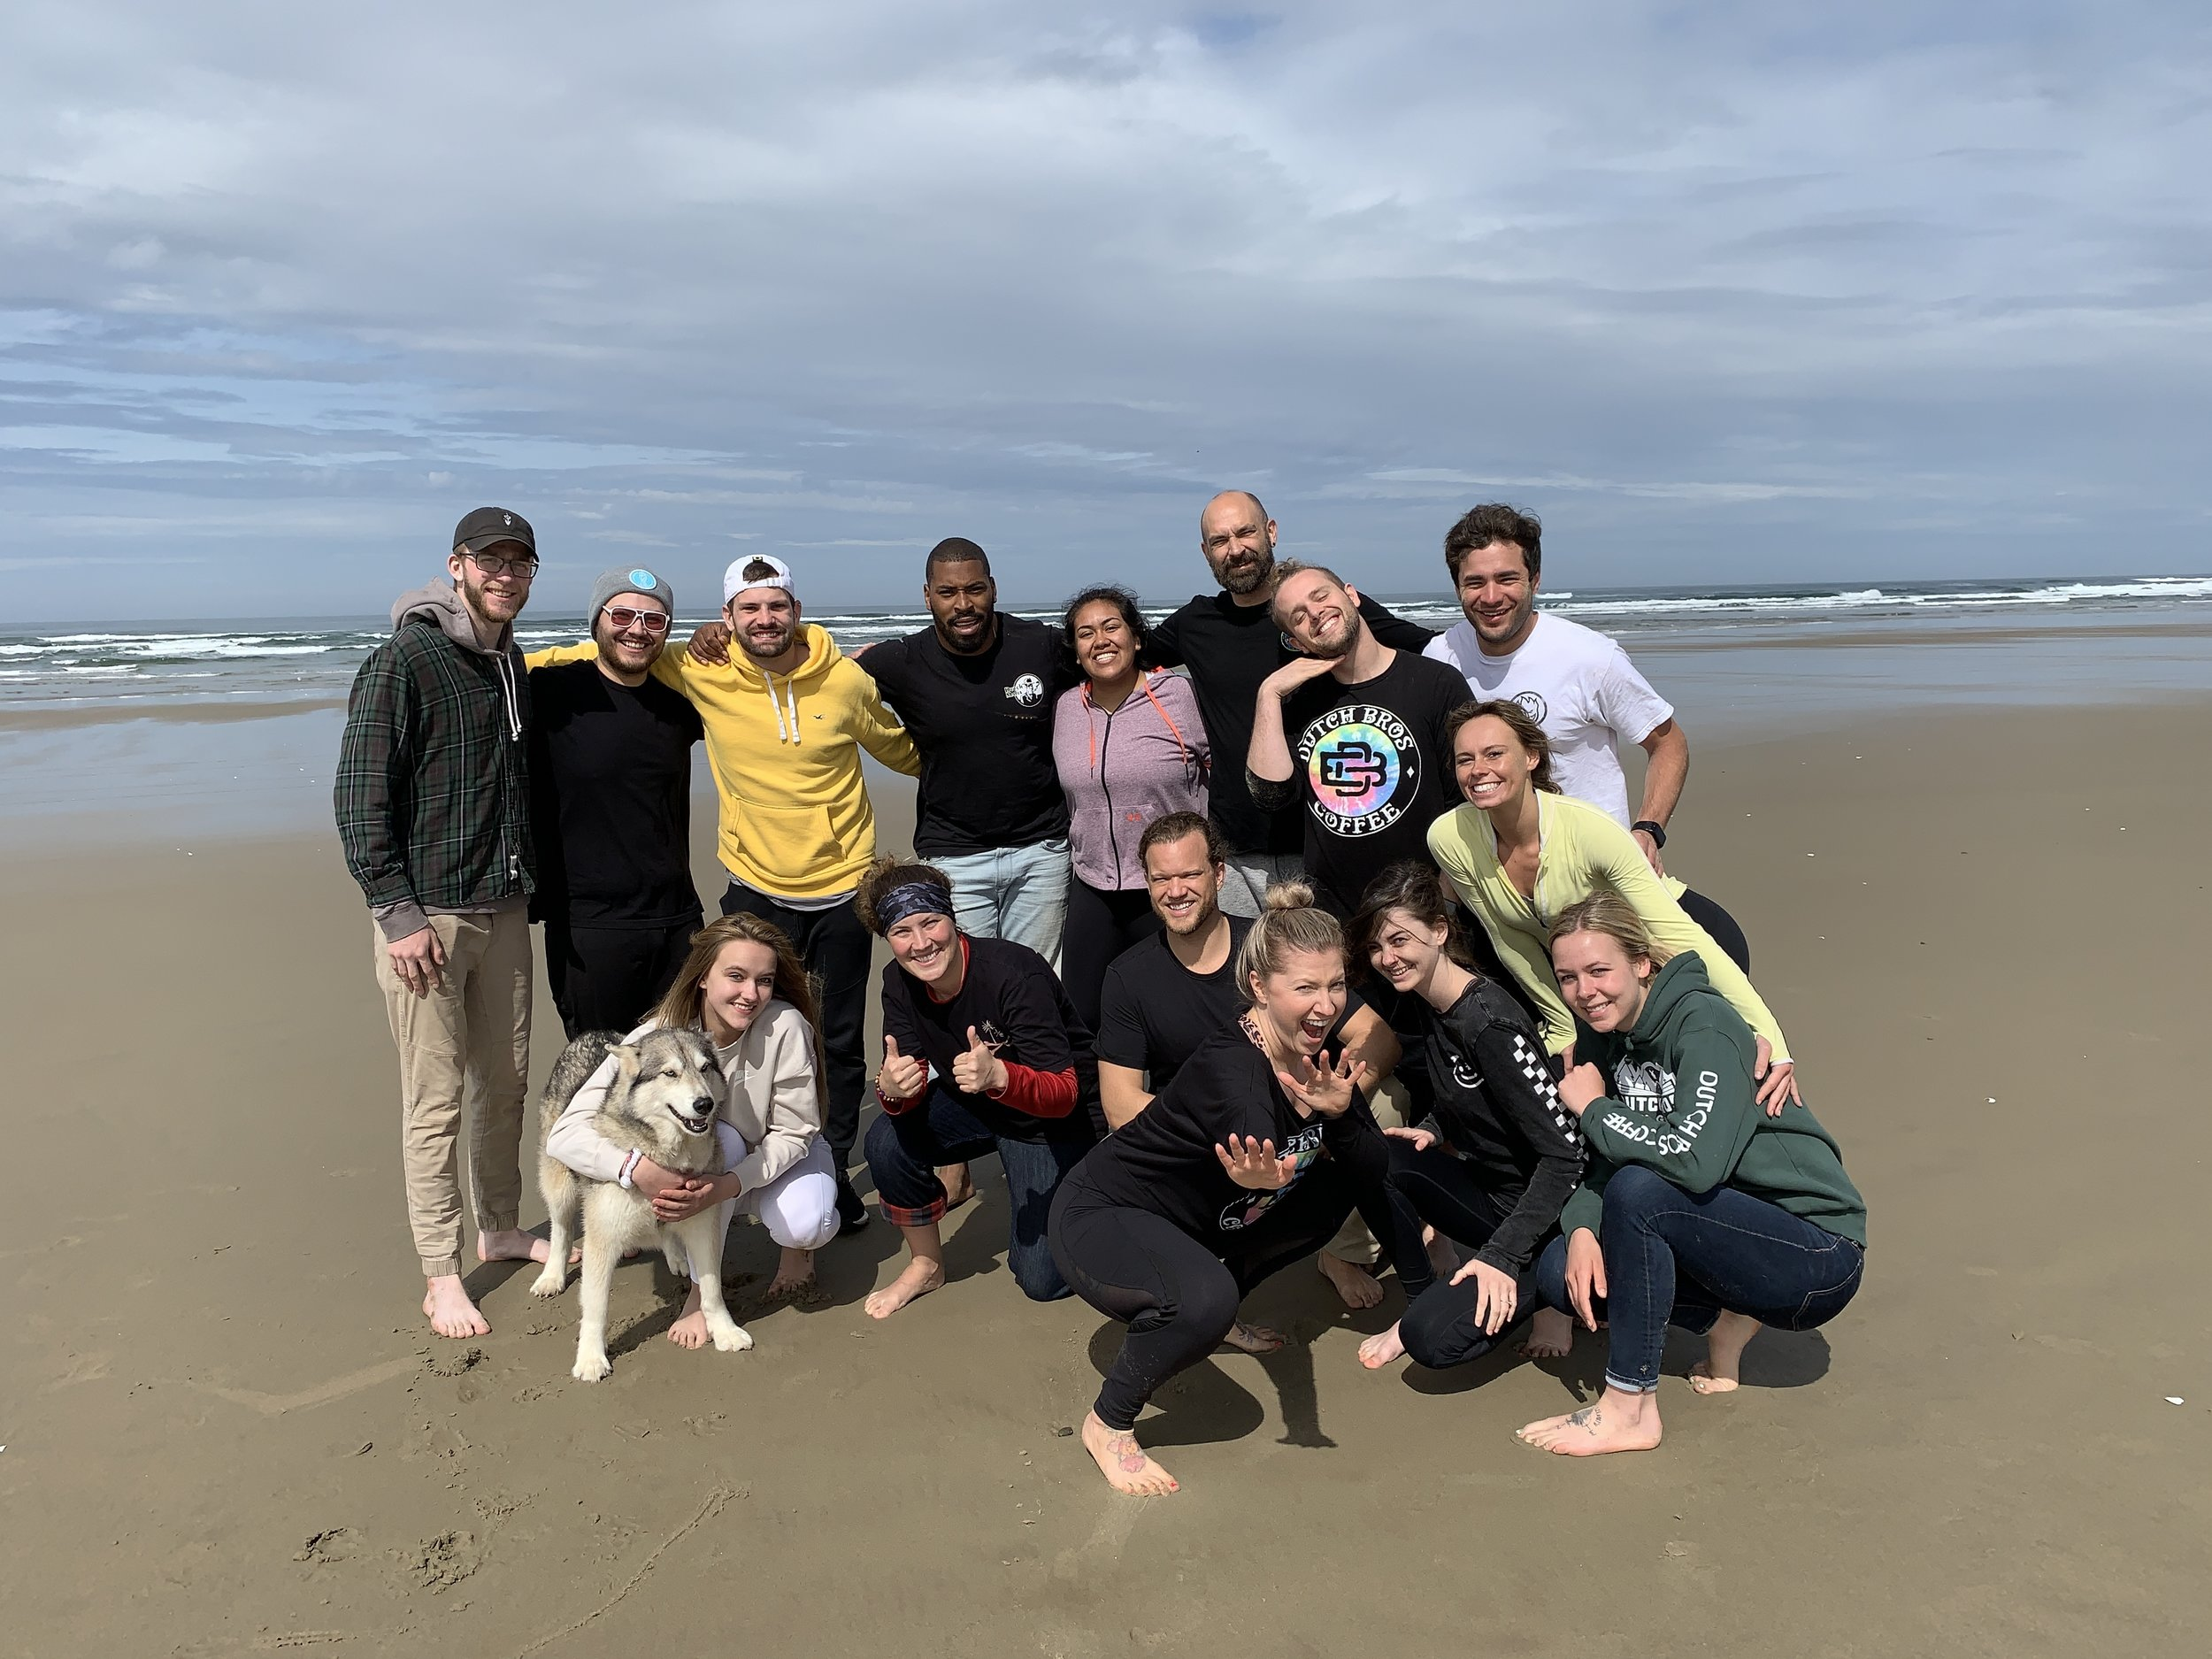 Our Earth Day beach clean up crew!